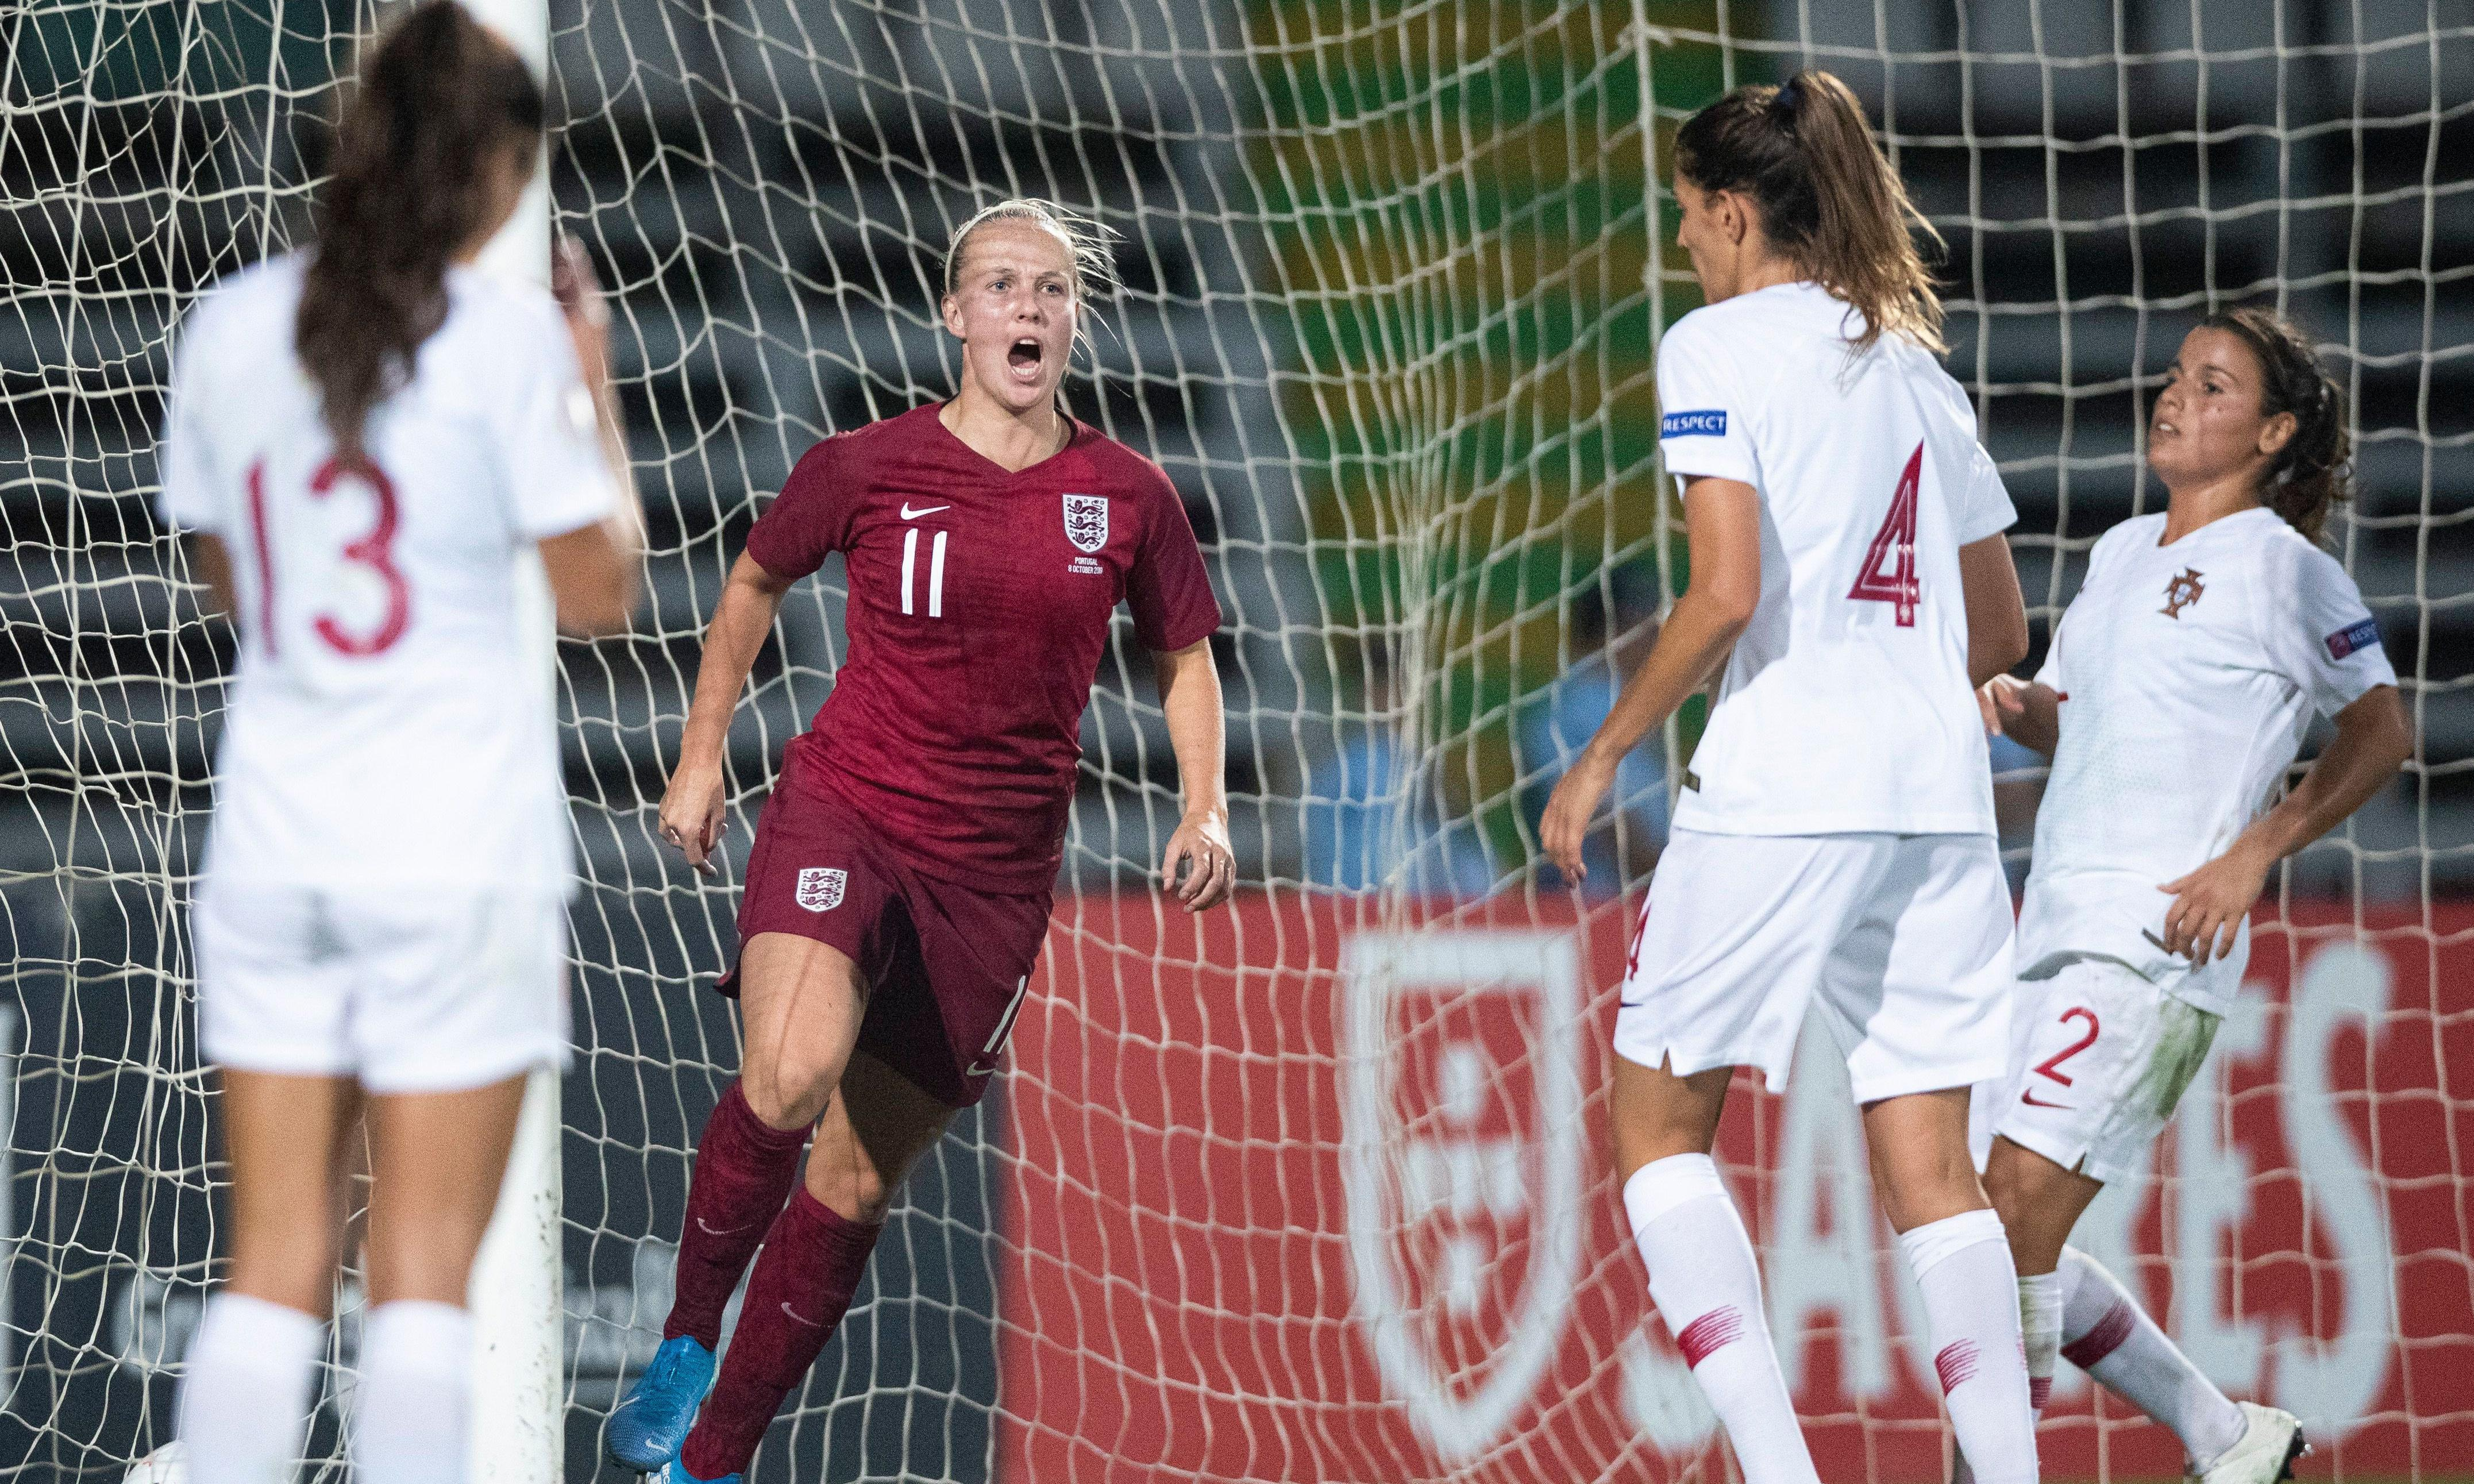 Beth Mead snatches win for England after Morais's goalkeeping howler